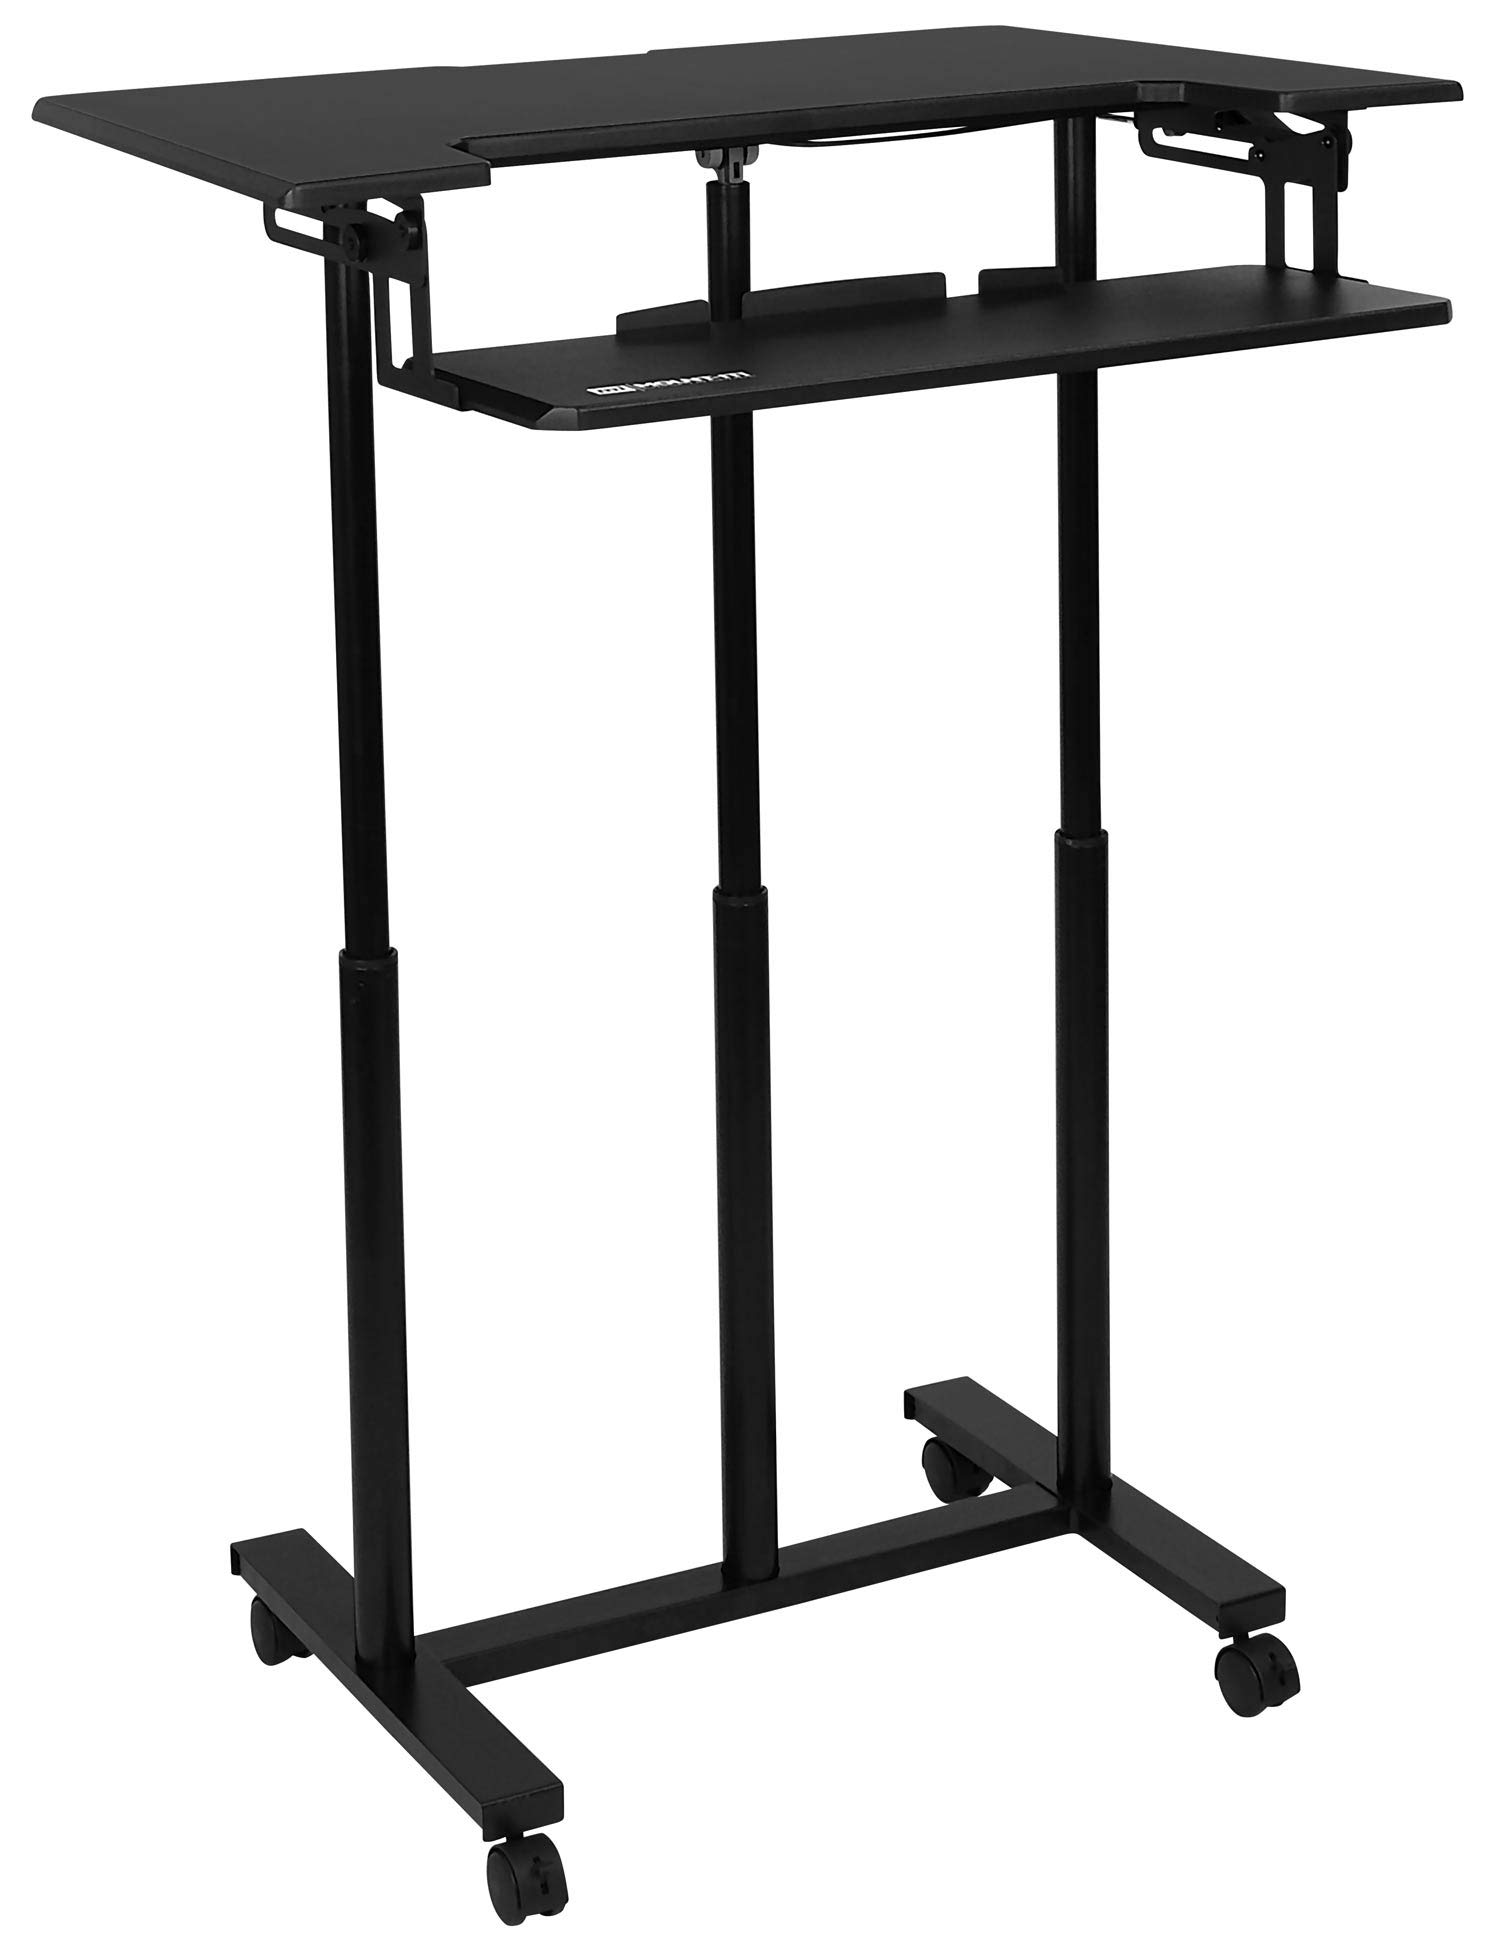 Mount-It! Mobile Standing Desk with Wheels, Rolling Sit Stand Workstation for Desktop Computers and Laptops, 34 Inch Wide with Adjustable Keyboard Tray, Black by Mount-It!